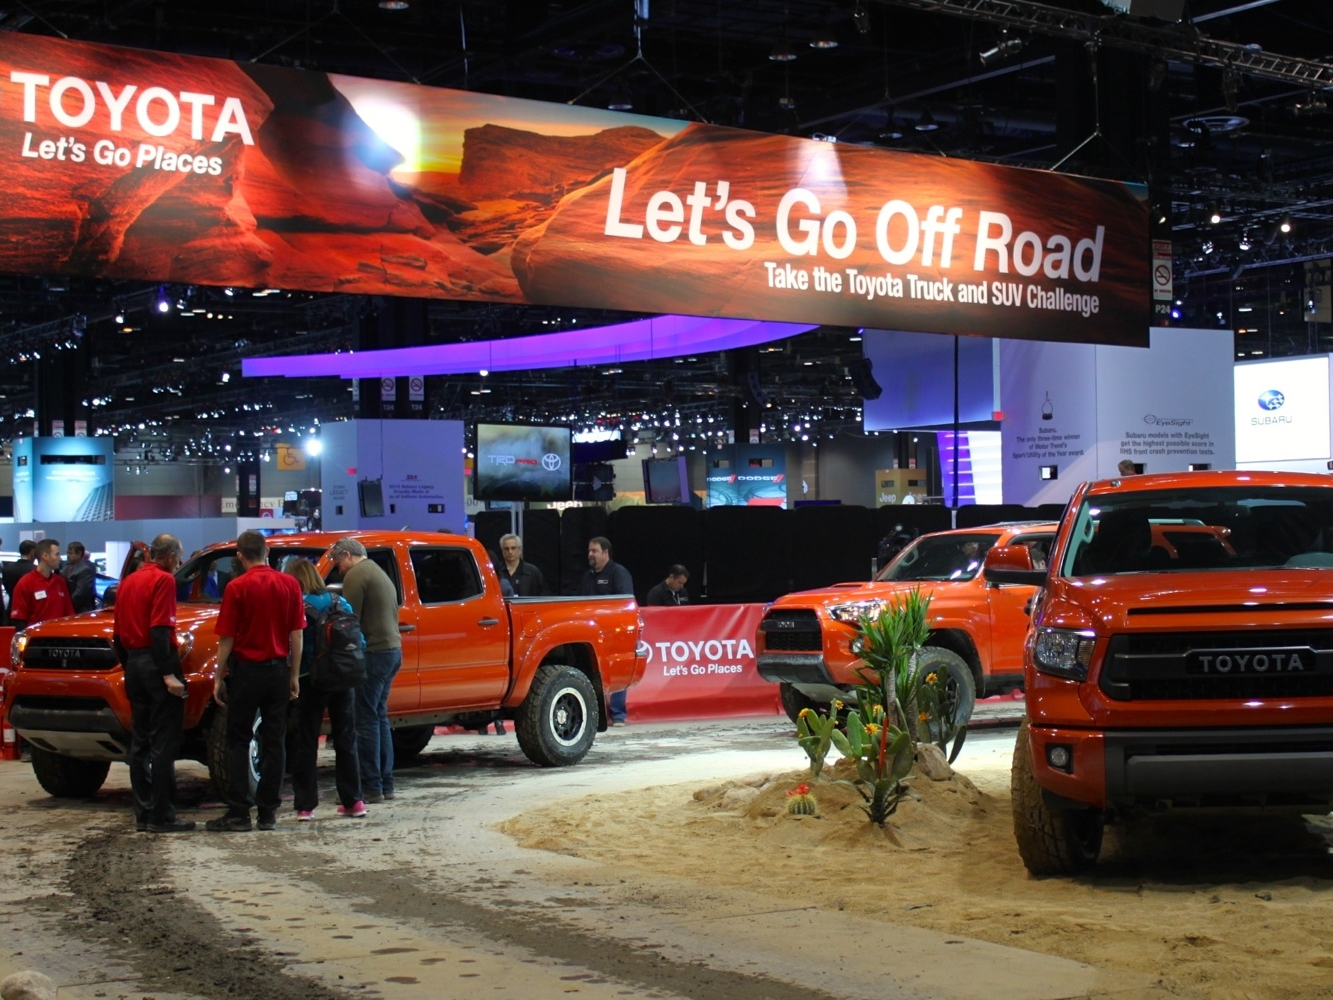 Chicago Auto Show Booth: McCormick Place